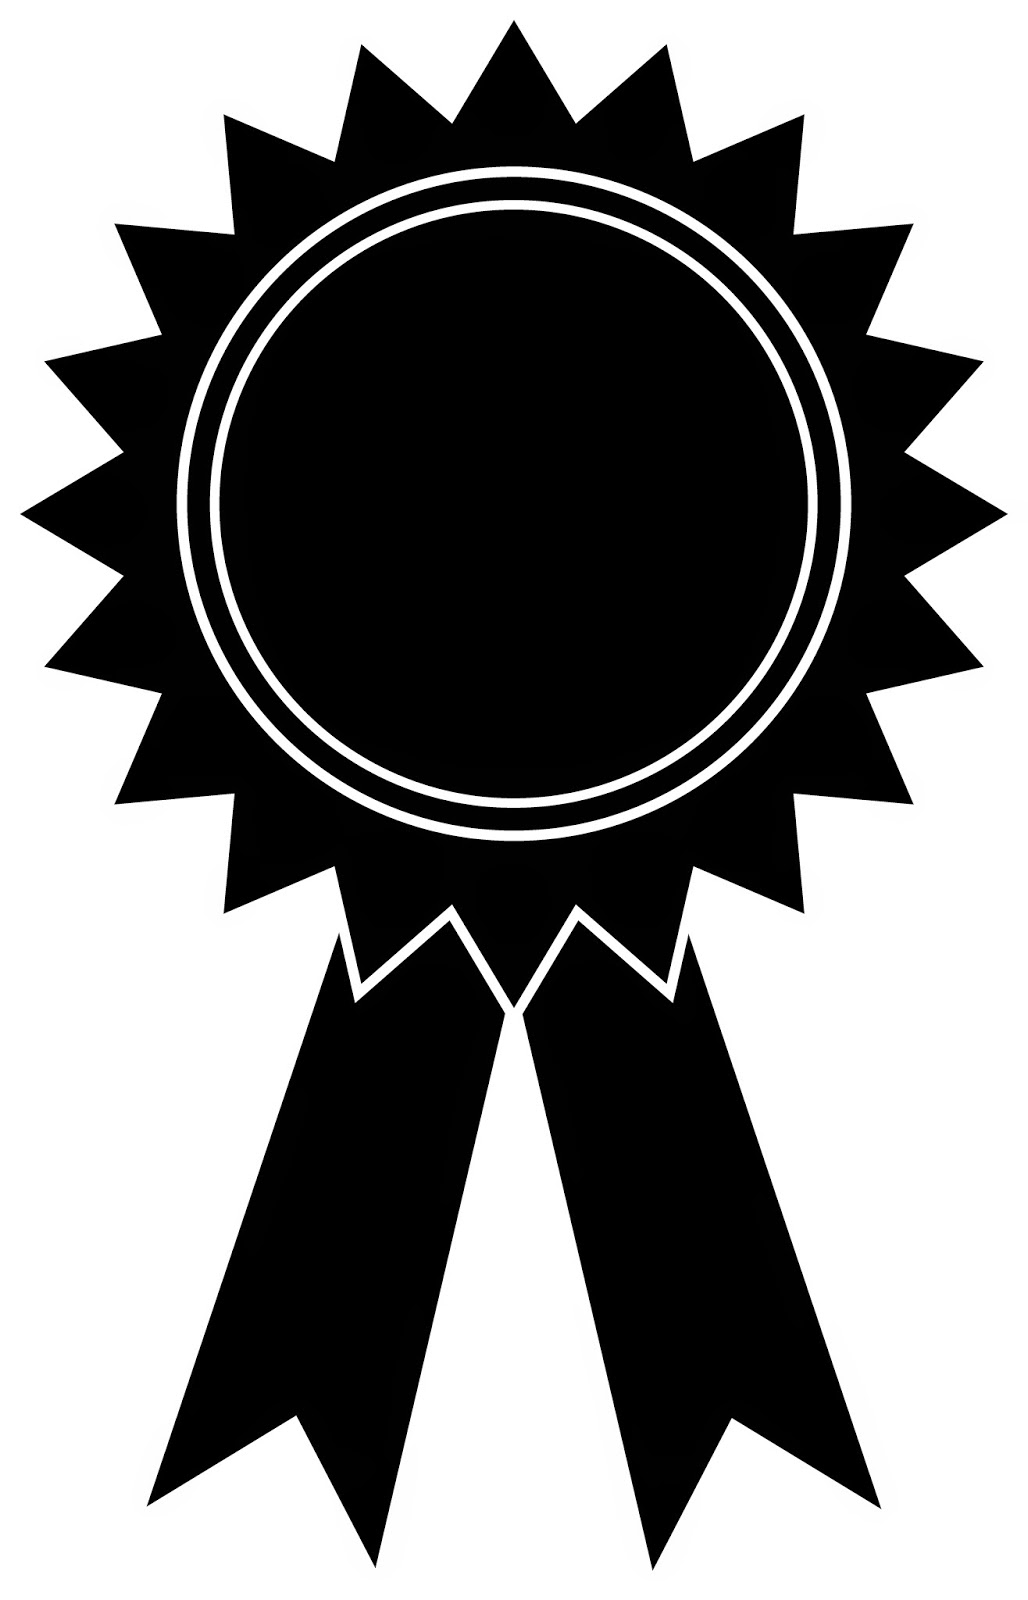 Award Ribbon Clipart Black And White · Award Outline Cliparts - Award Ribbon PNG Black And White